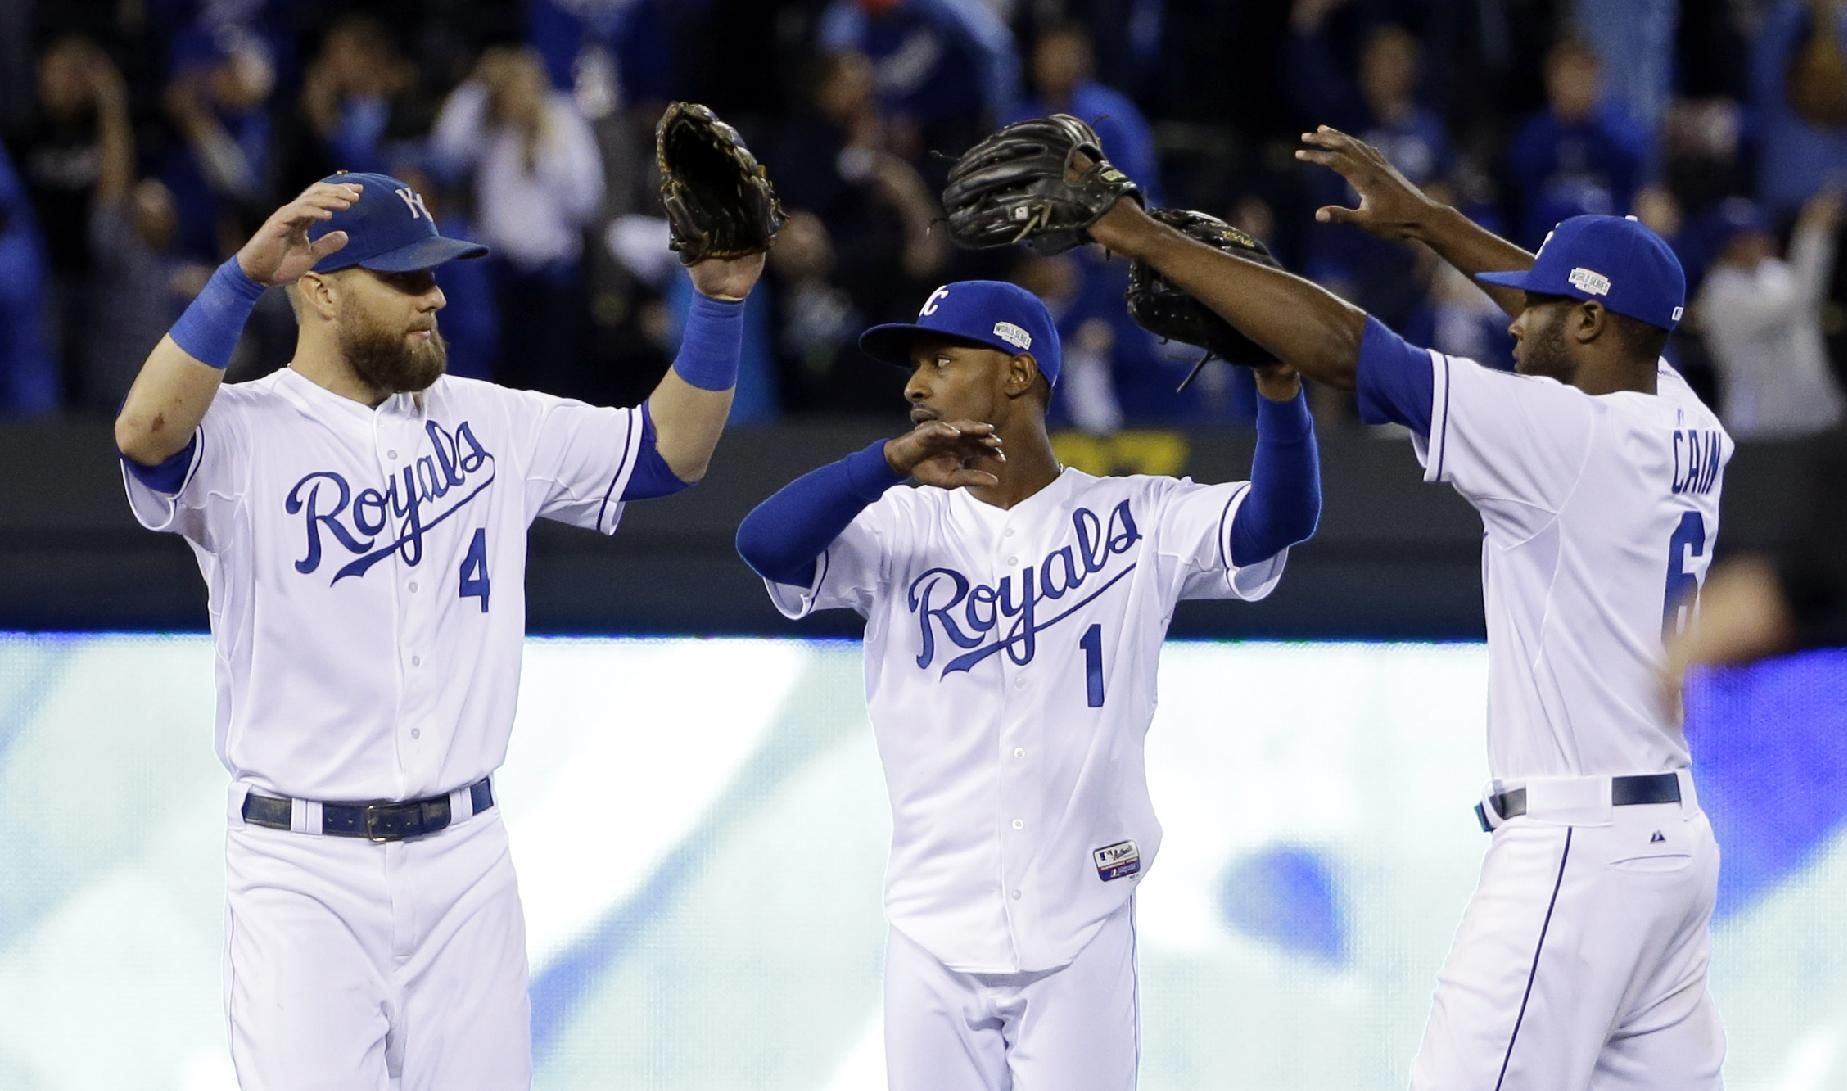 Kansas City Royals' Alex Gordon (4), Jarrod Dyson (1) and Lorenzo Cain (6) celebrate after Game 6 of baseball's World Series against the San Francisco Giants Tuesday, Oct. 28, 2014, in Kansas City, Mo. The Royals won 10-0 to tie the series at 3-3. (AP Photo/David J. Phillip)